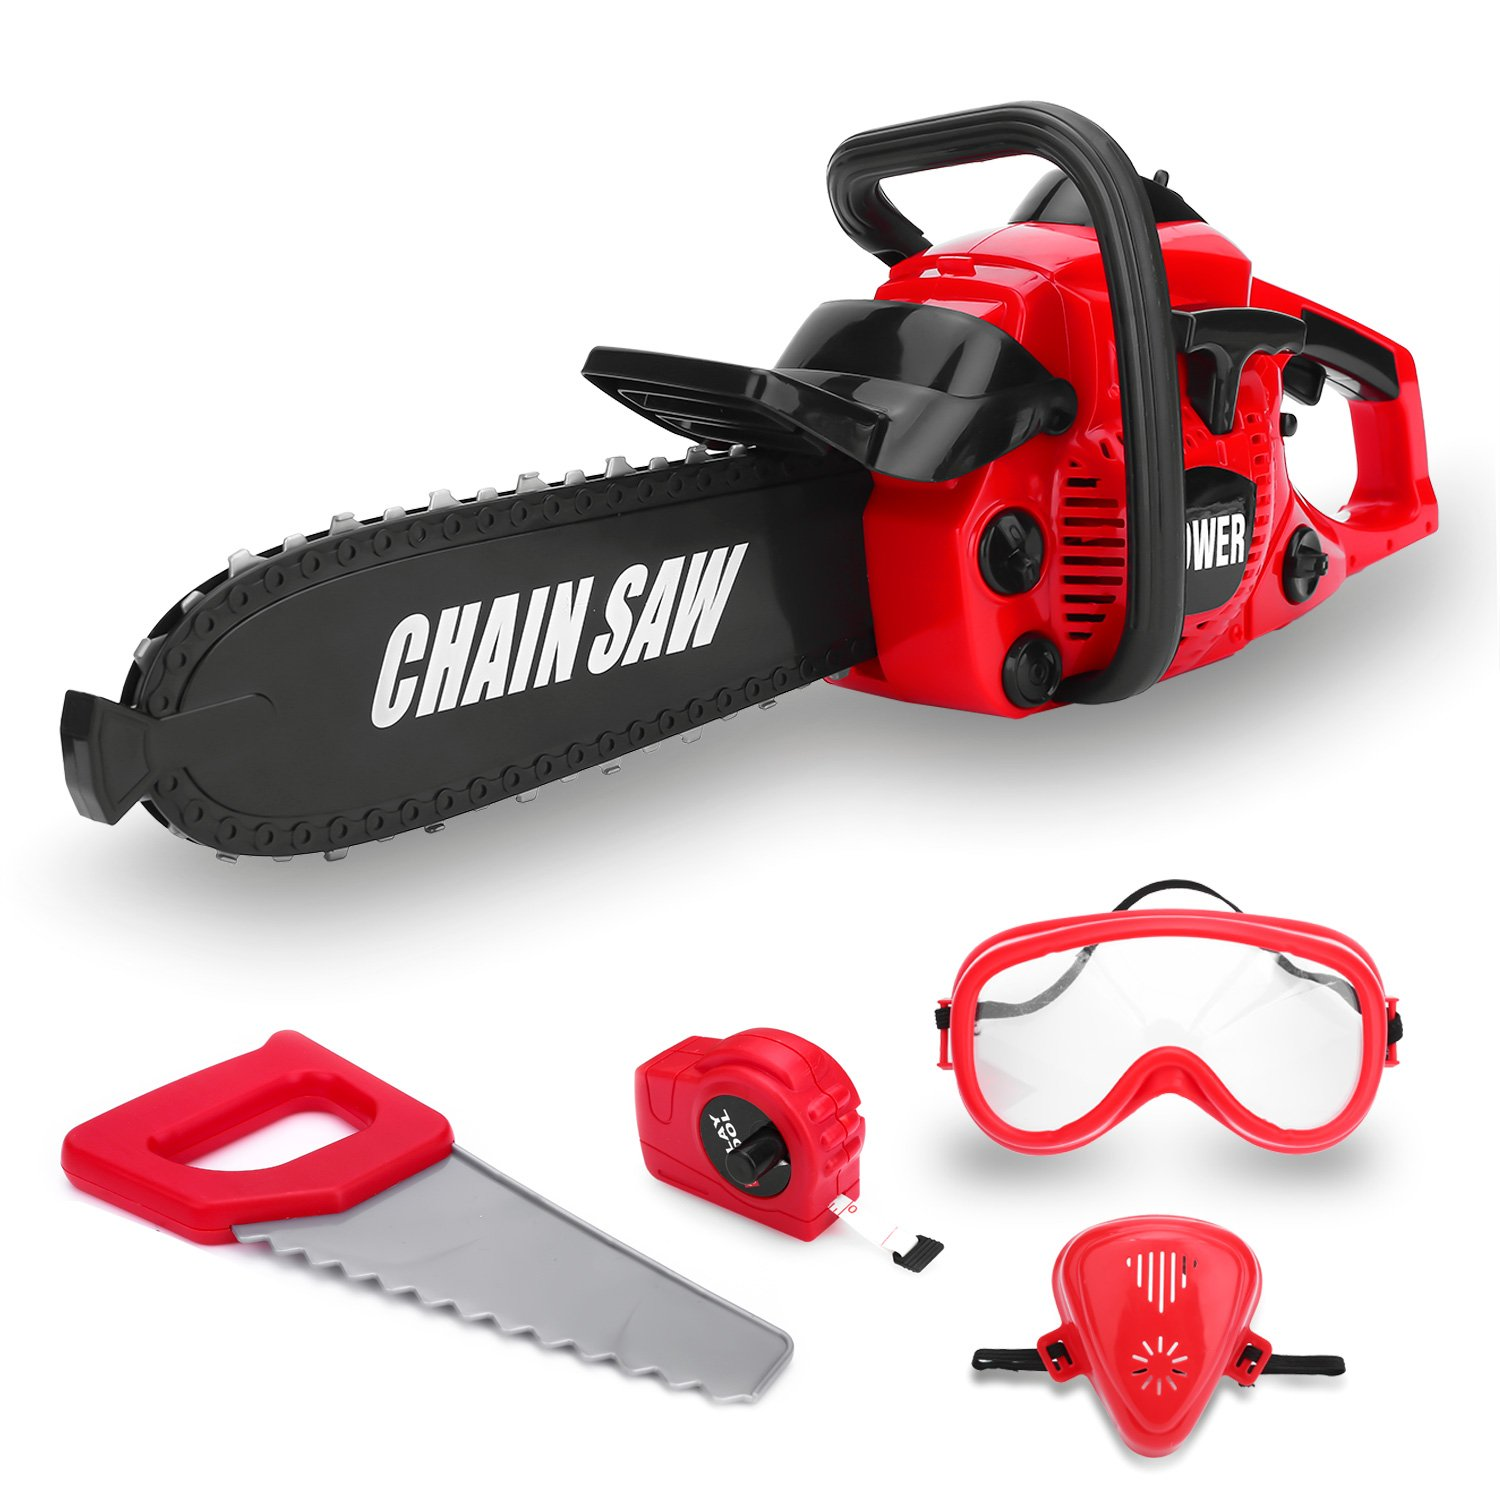 Kids Size Power Construction Yard Toy Pack Tool Big Play Realistic Chainsaw with Sound, Toddlers Pretend Play Yardwork Lawn Equipment Giant Plastic Chains Saw for Boys Garden Tool by Toy Choi's